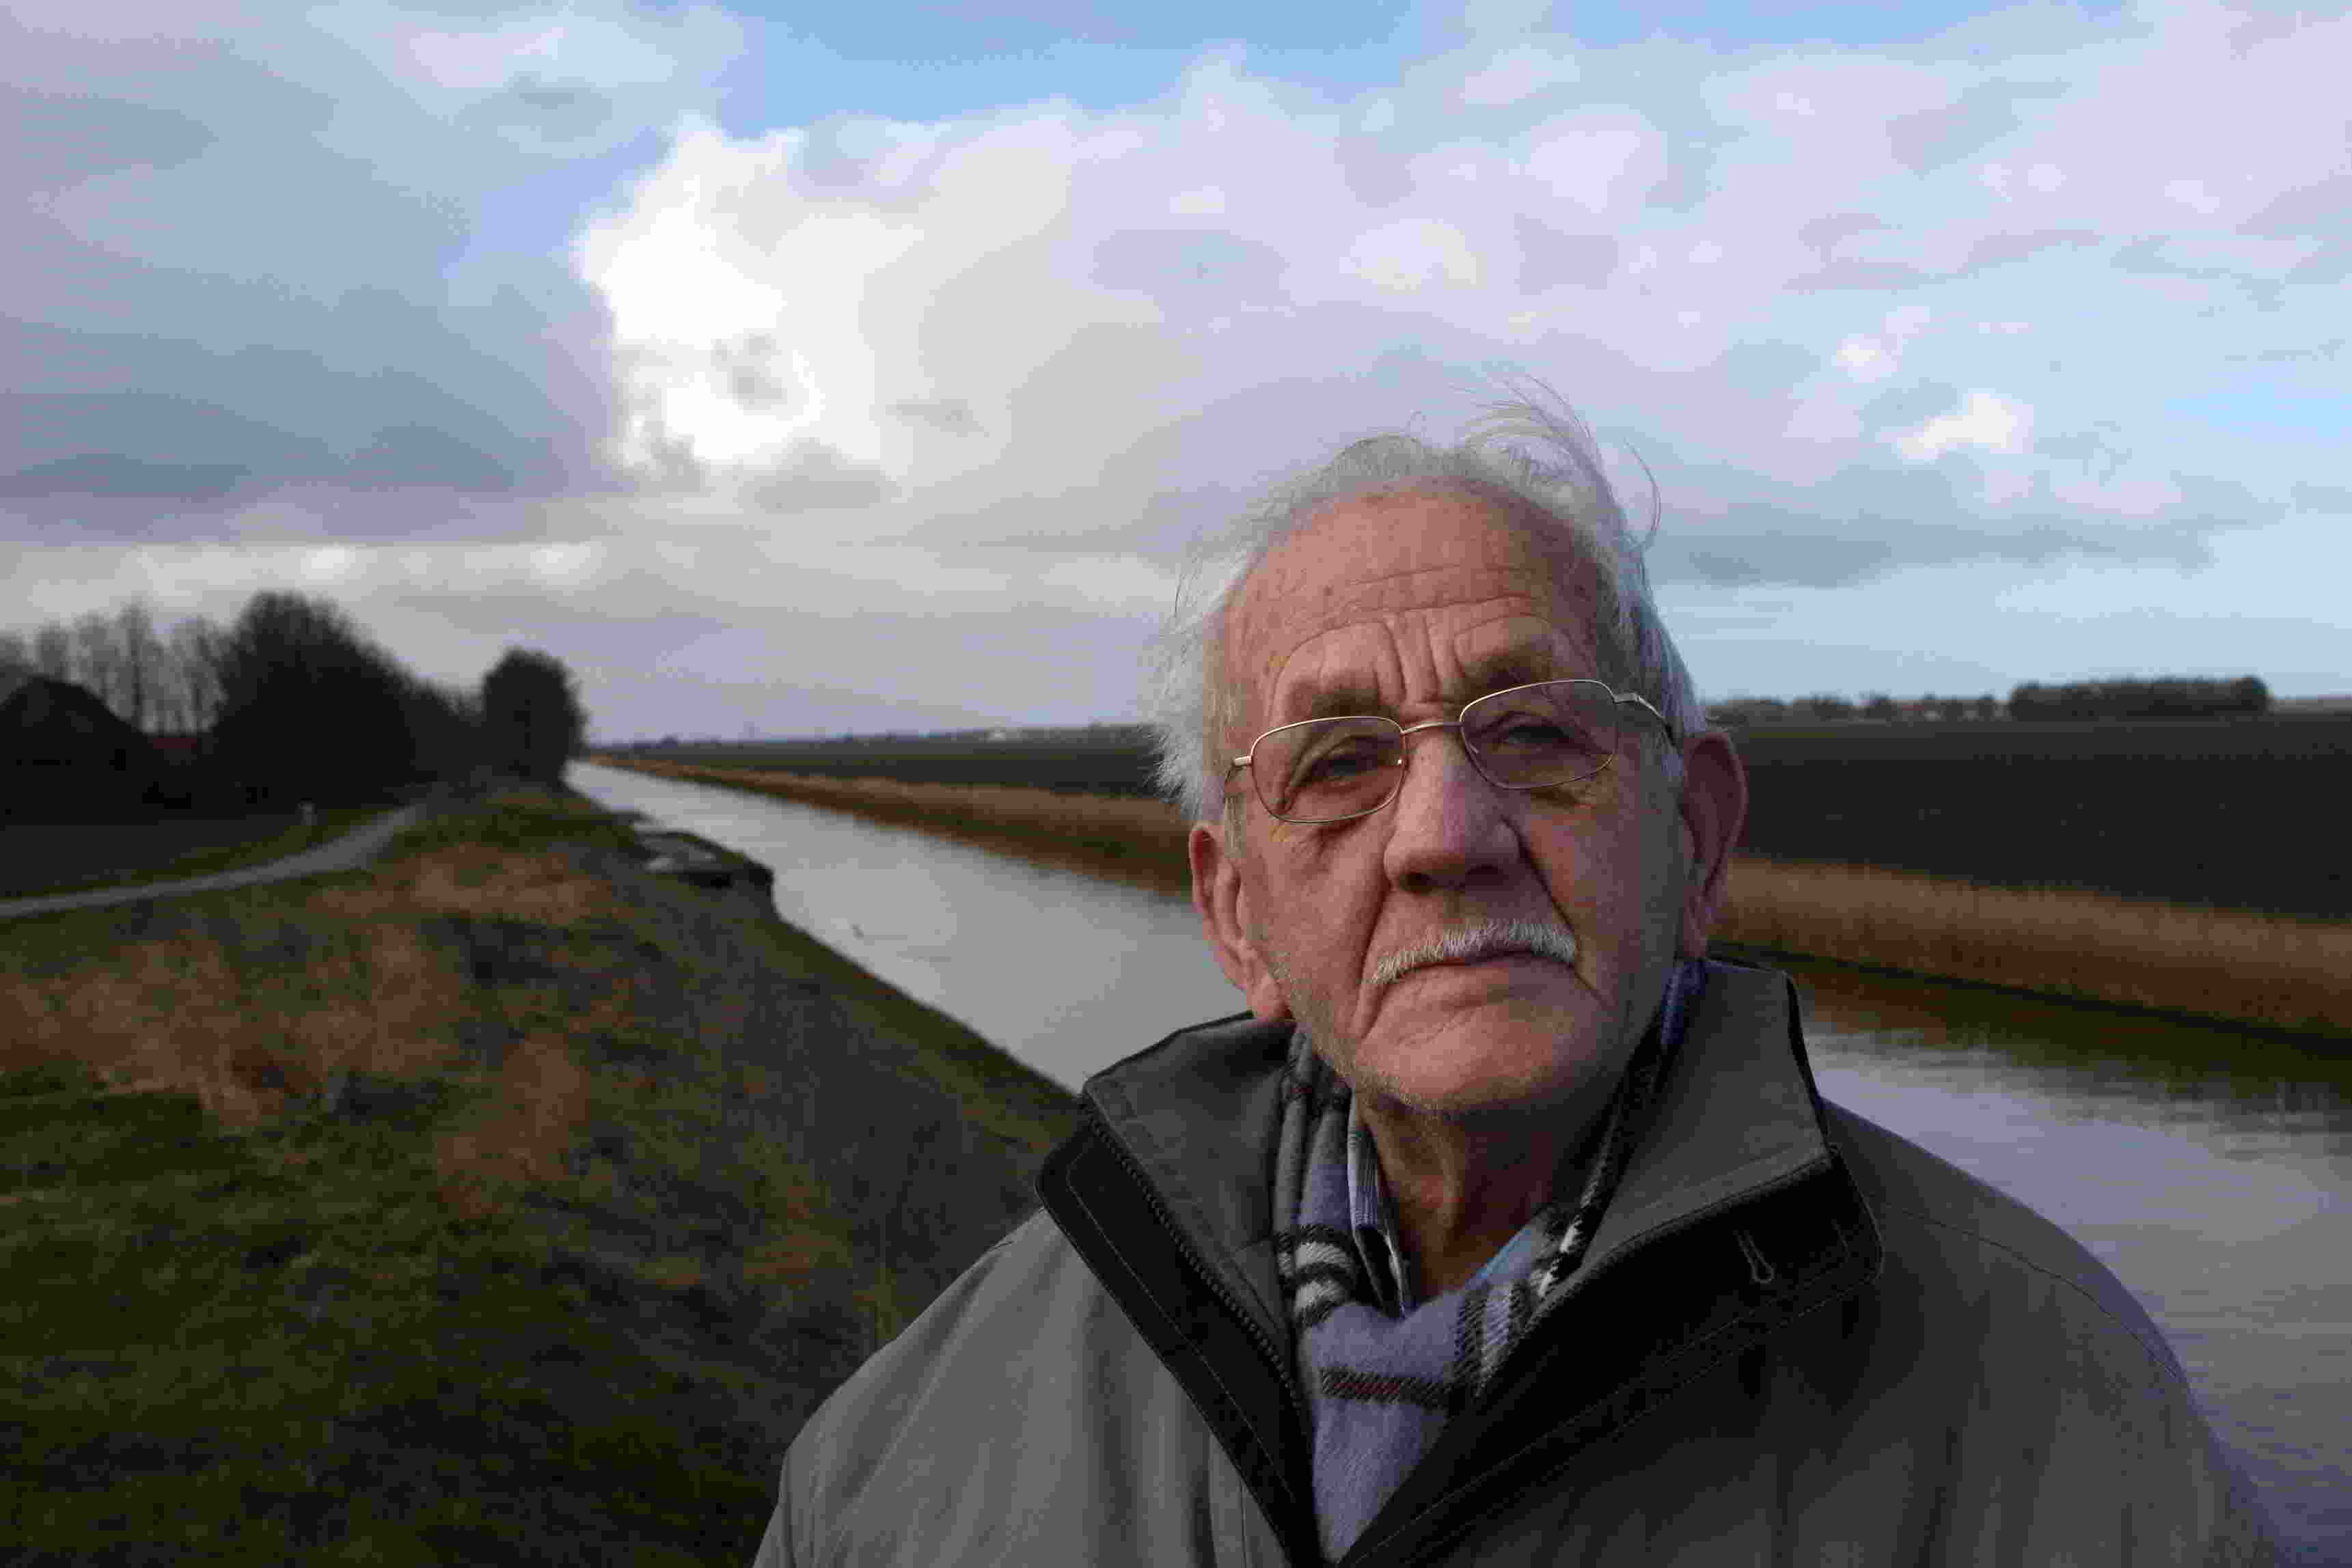 Lucas Huizinga (1917-2012) from Marknesse worked for many years in the exploitation of the Noordoostpolder in the 1940s. Digging ditches and spreading fertiliser day after day.